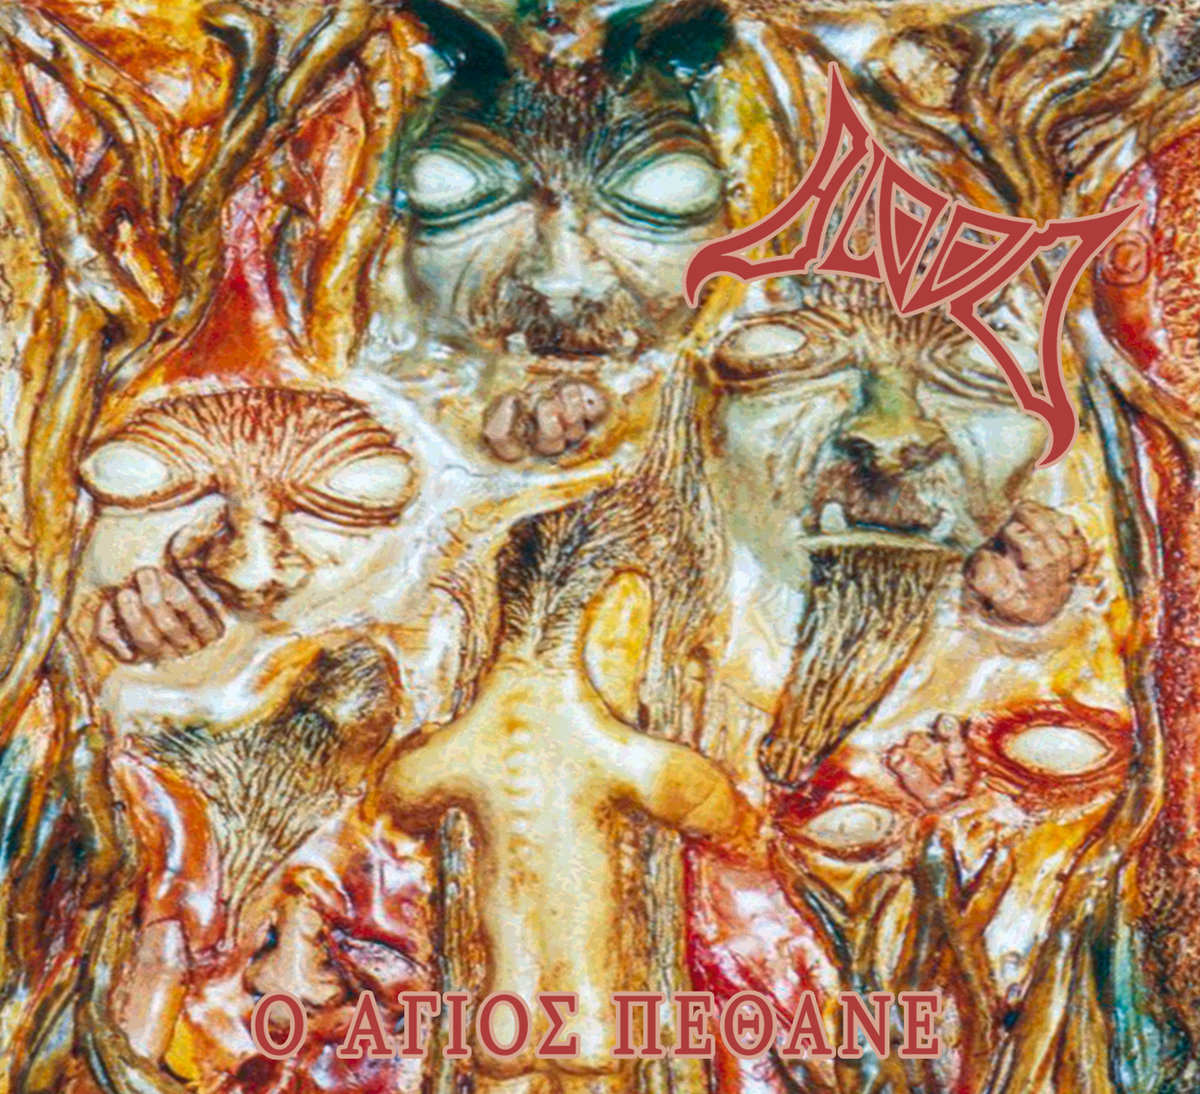 Blood - O Agios Pethane  (Digipak)